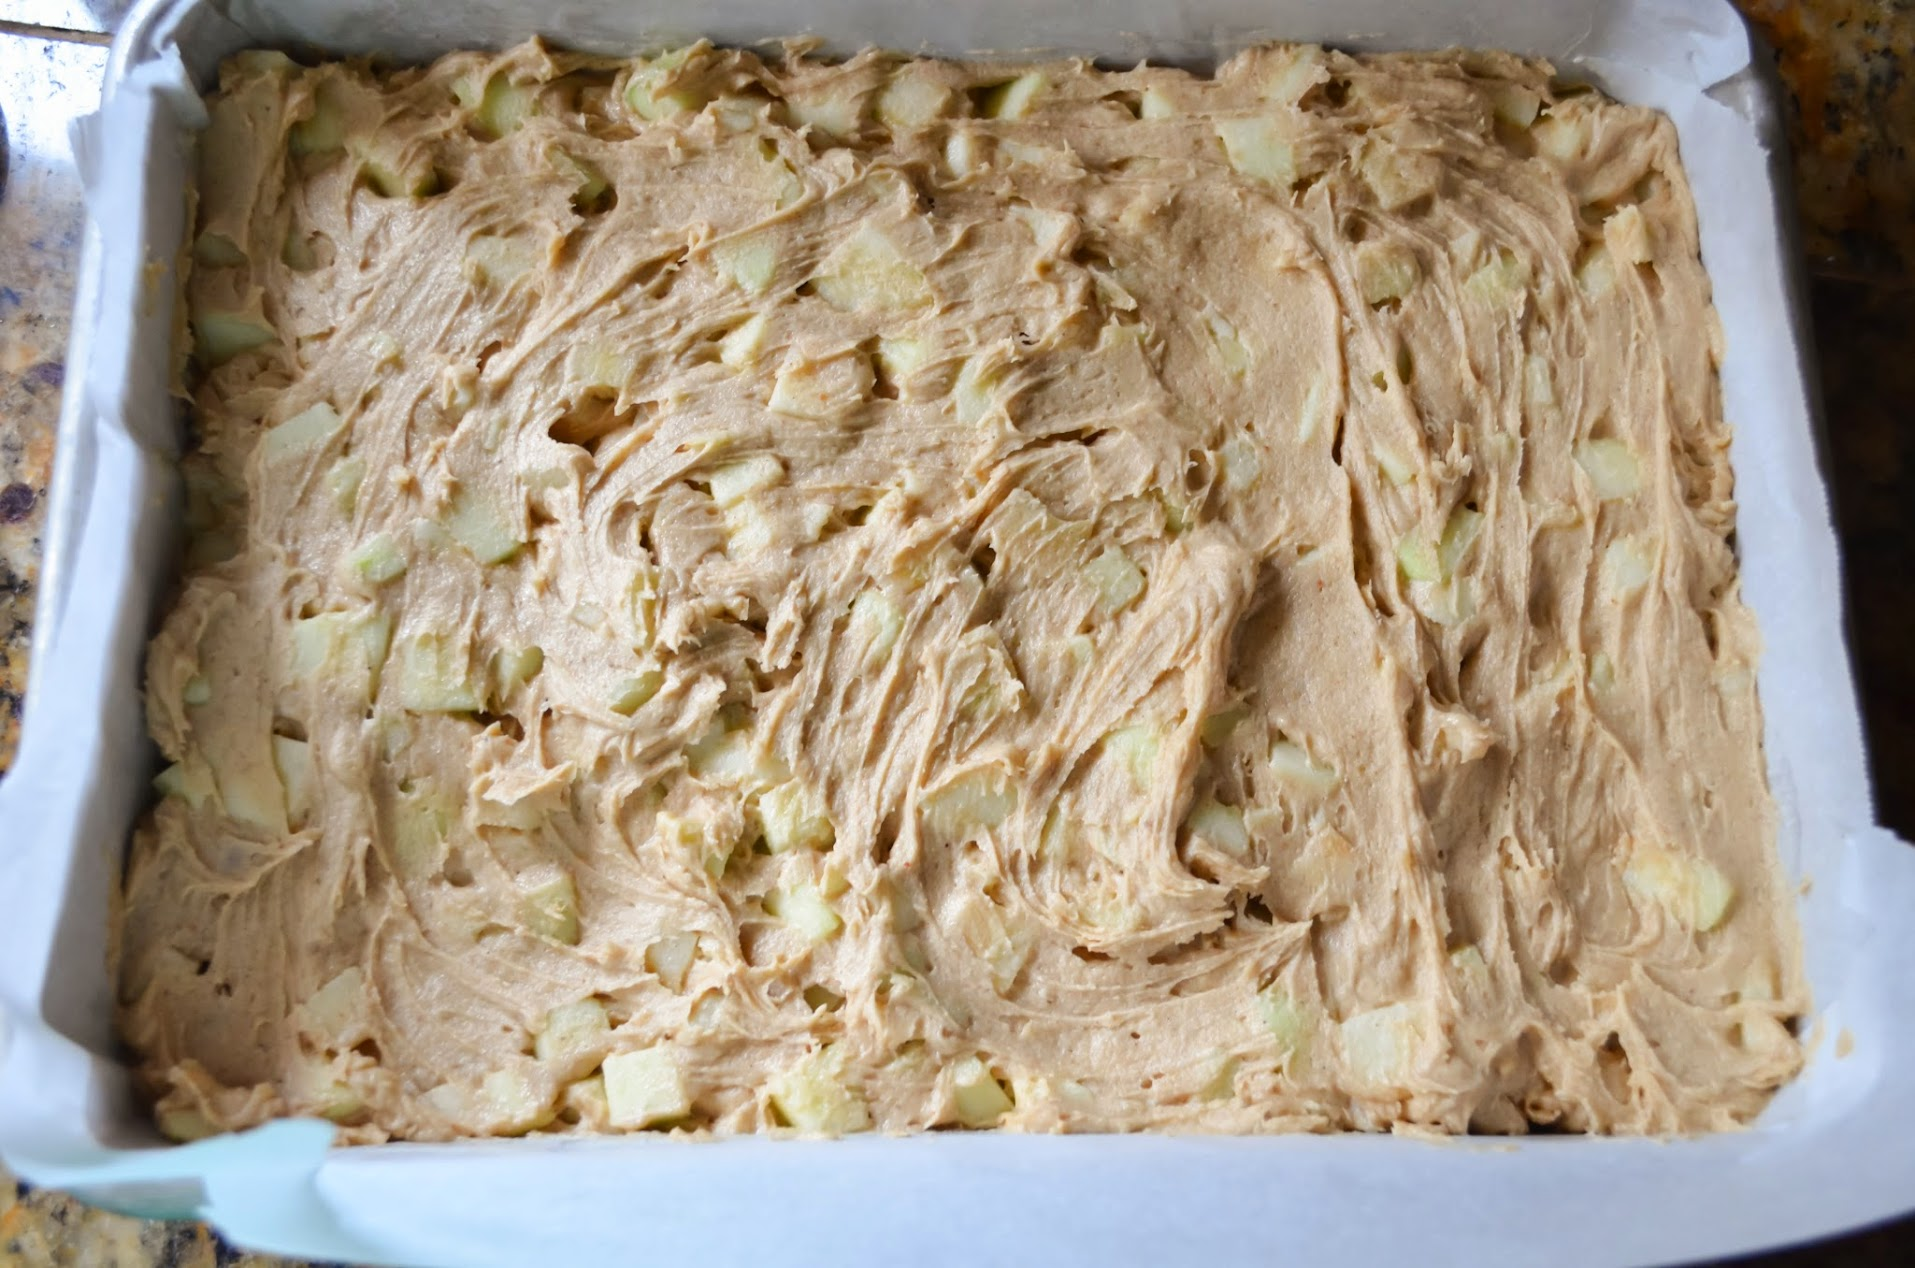 Caramel-Apple-Cake-Spread-Evenly.jpg